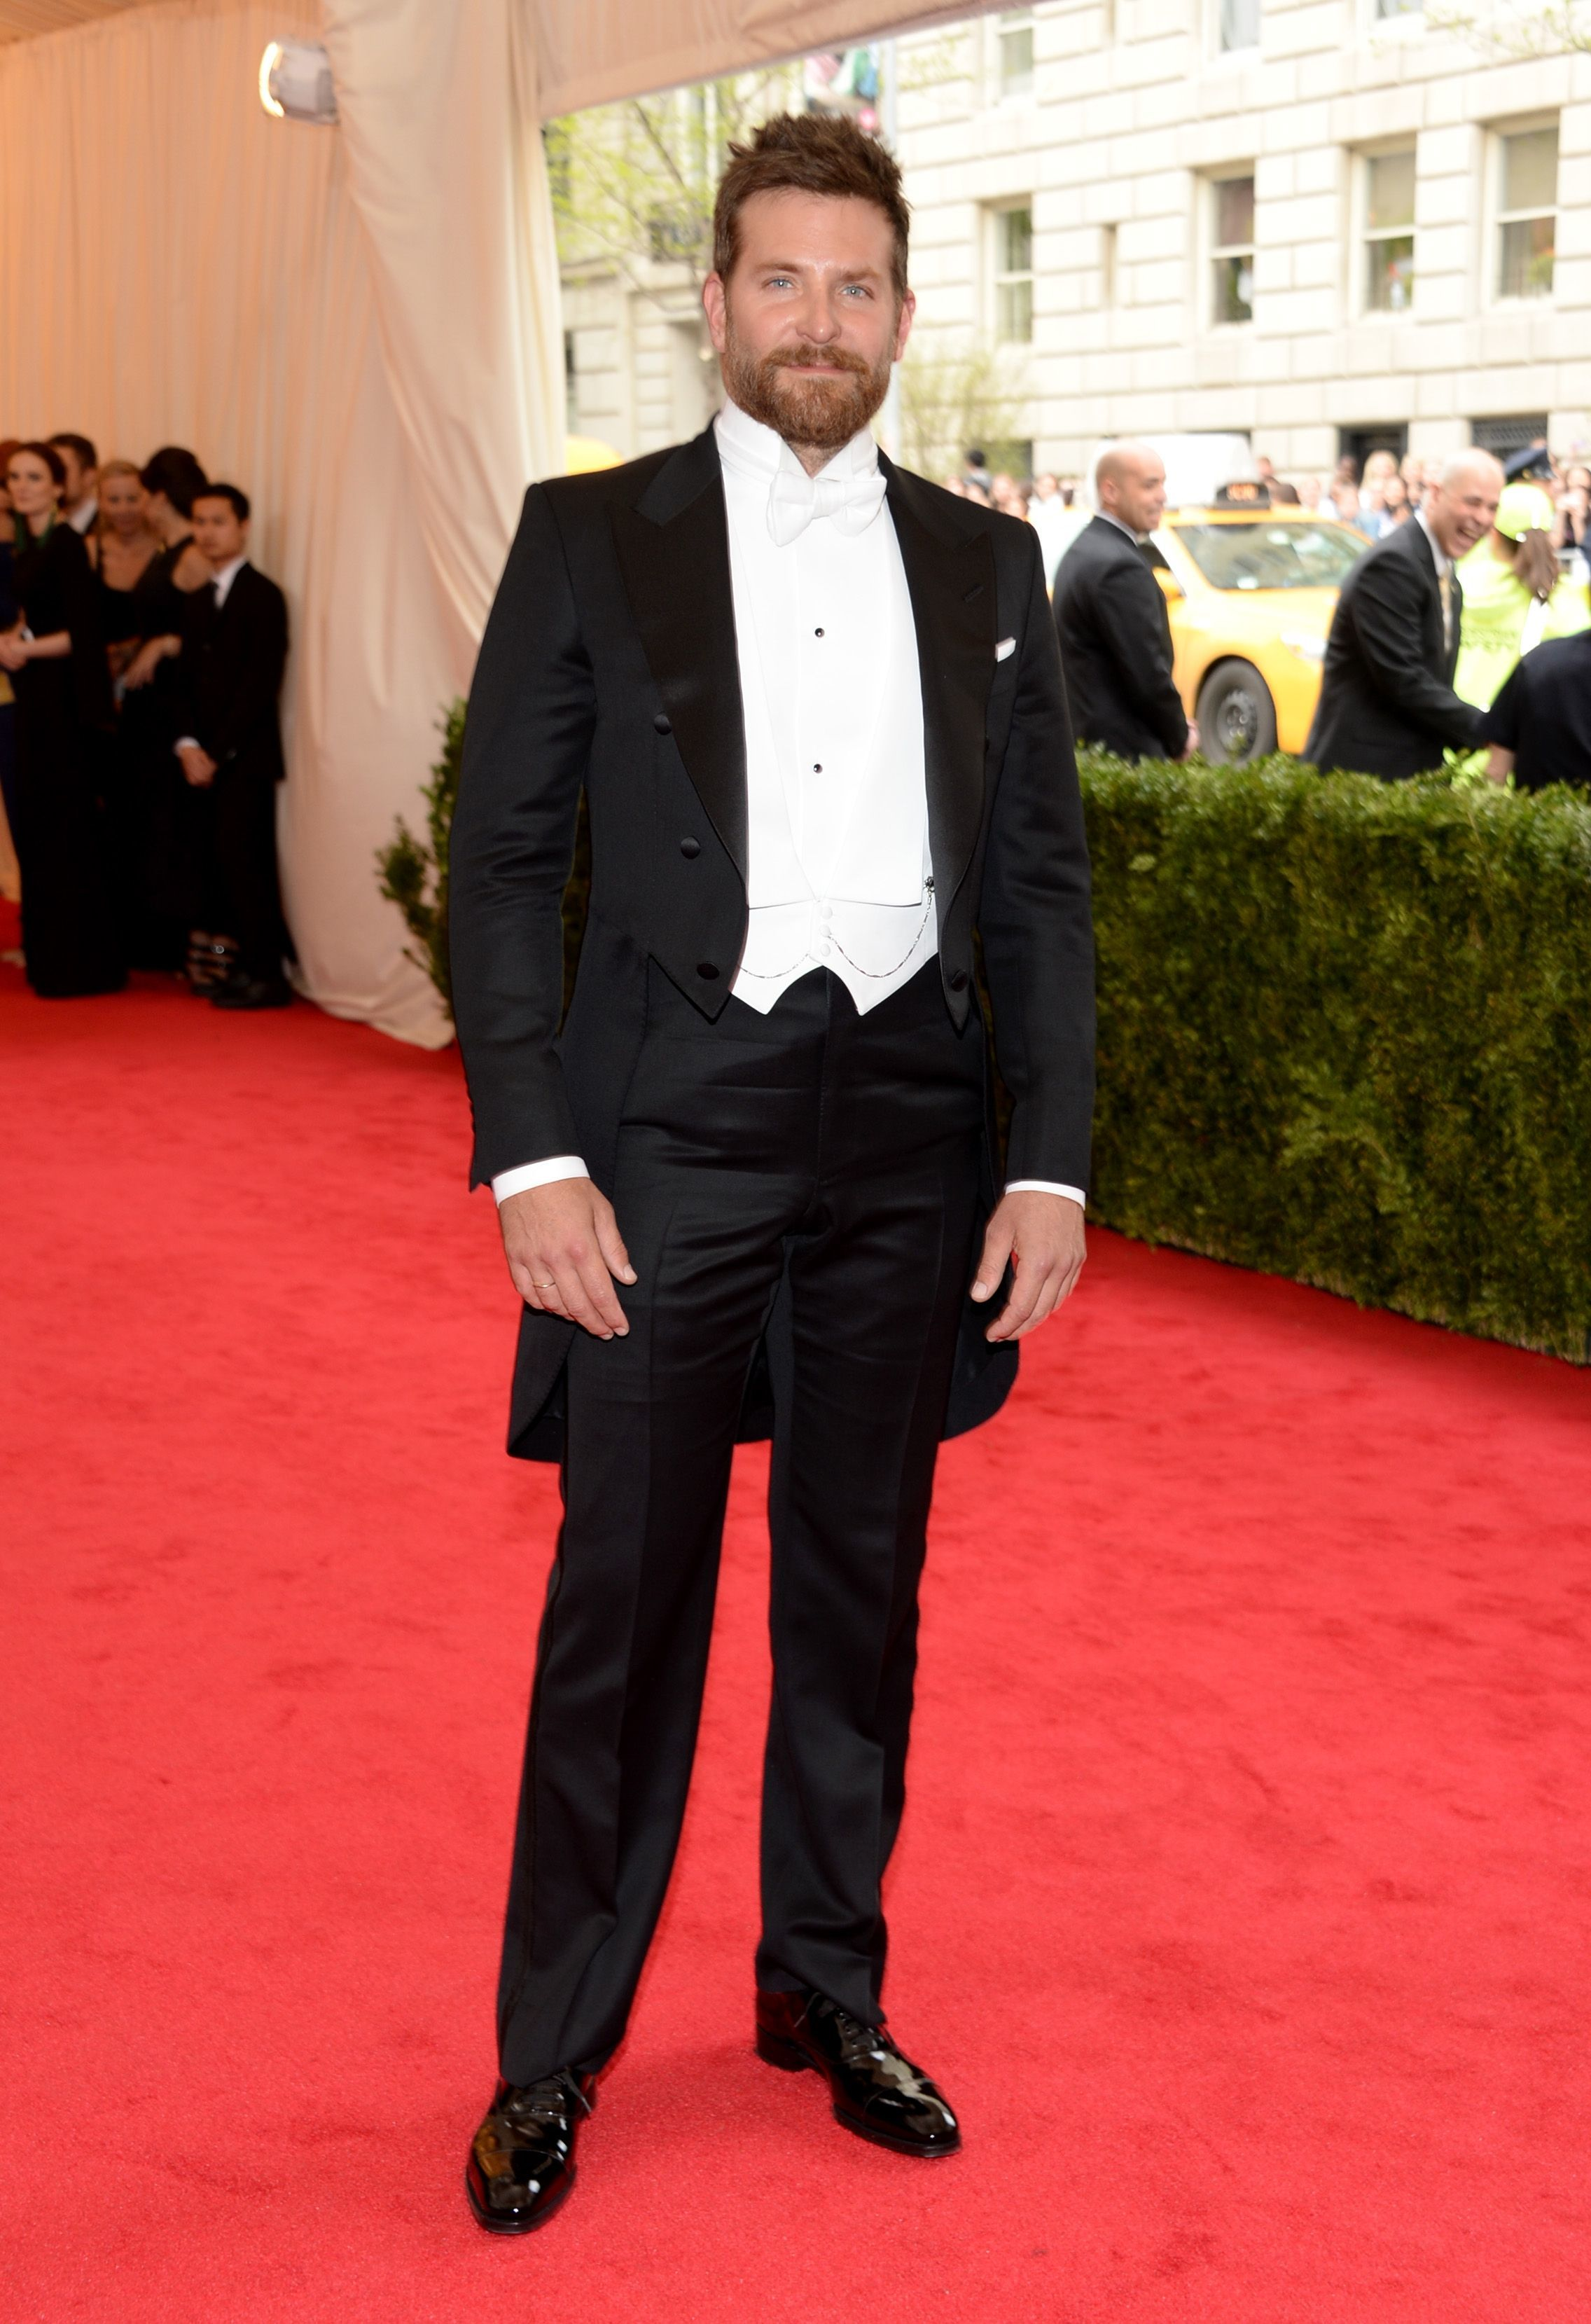 Bradley Cooper attends the Metropolitan Museum of Art's Costume Institute Gala in New York City on May 5, 2014.